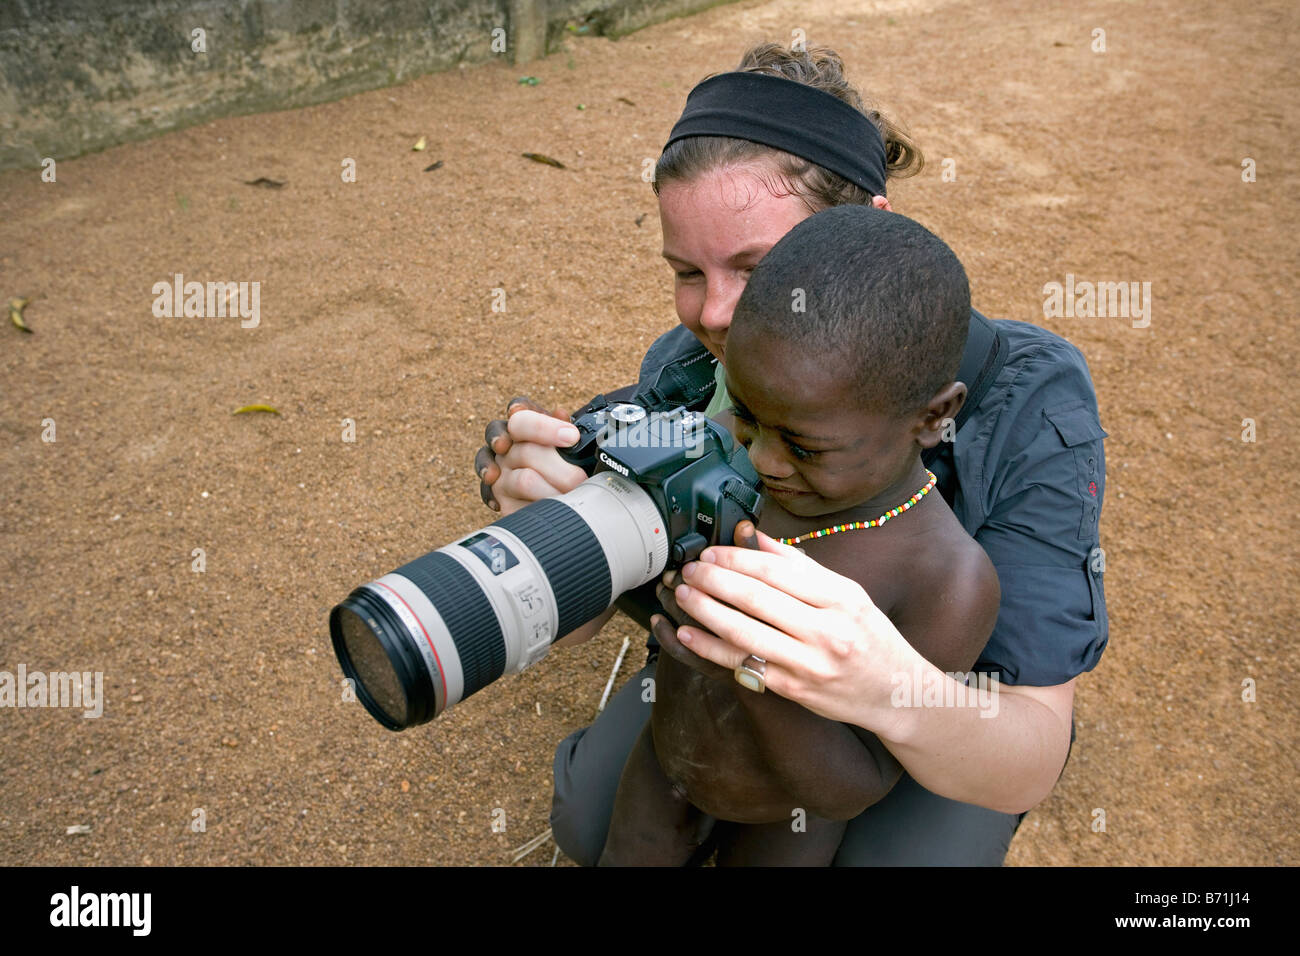 Suriname, Laduani, at the bank of the Boven Suriname river. Woman, tourist, showing camera to boy from Saramaccaner - Stock Image